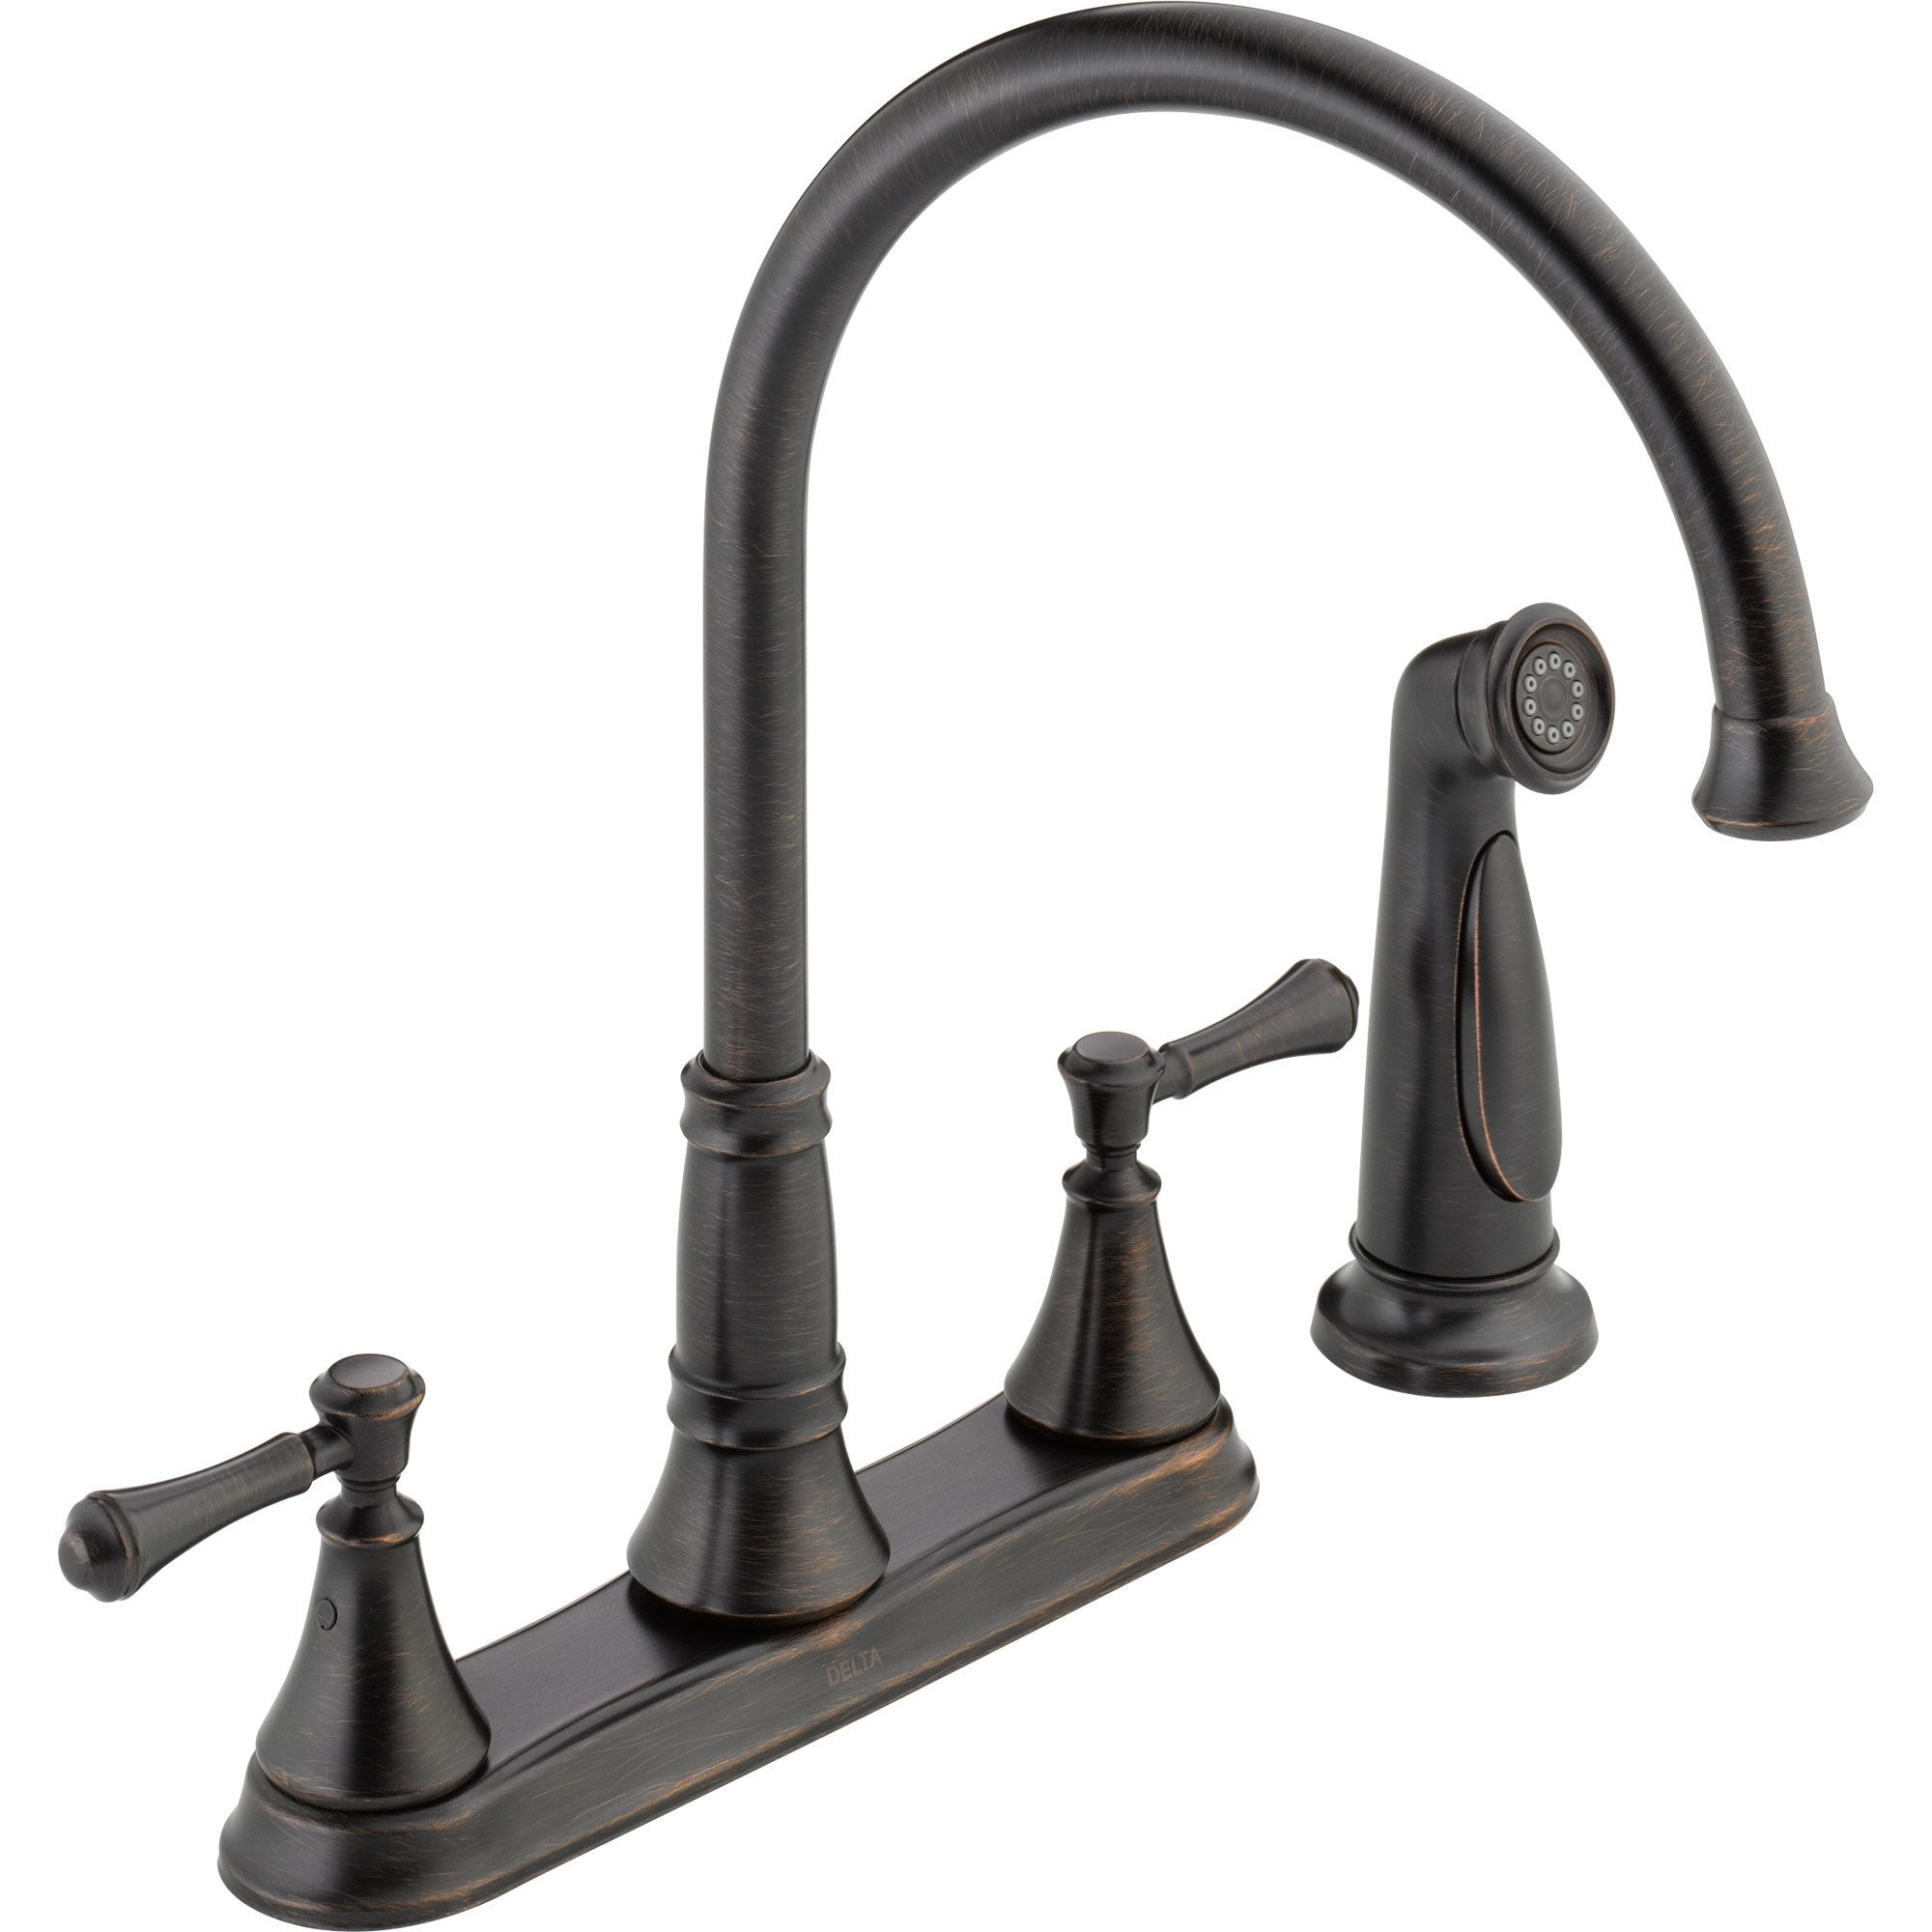 Delta Cassidy Gooseneck Venetian Bronze Kitchen Faucet with Side Sprayer 579506